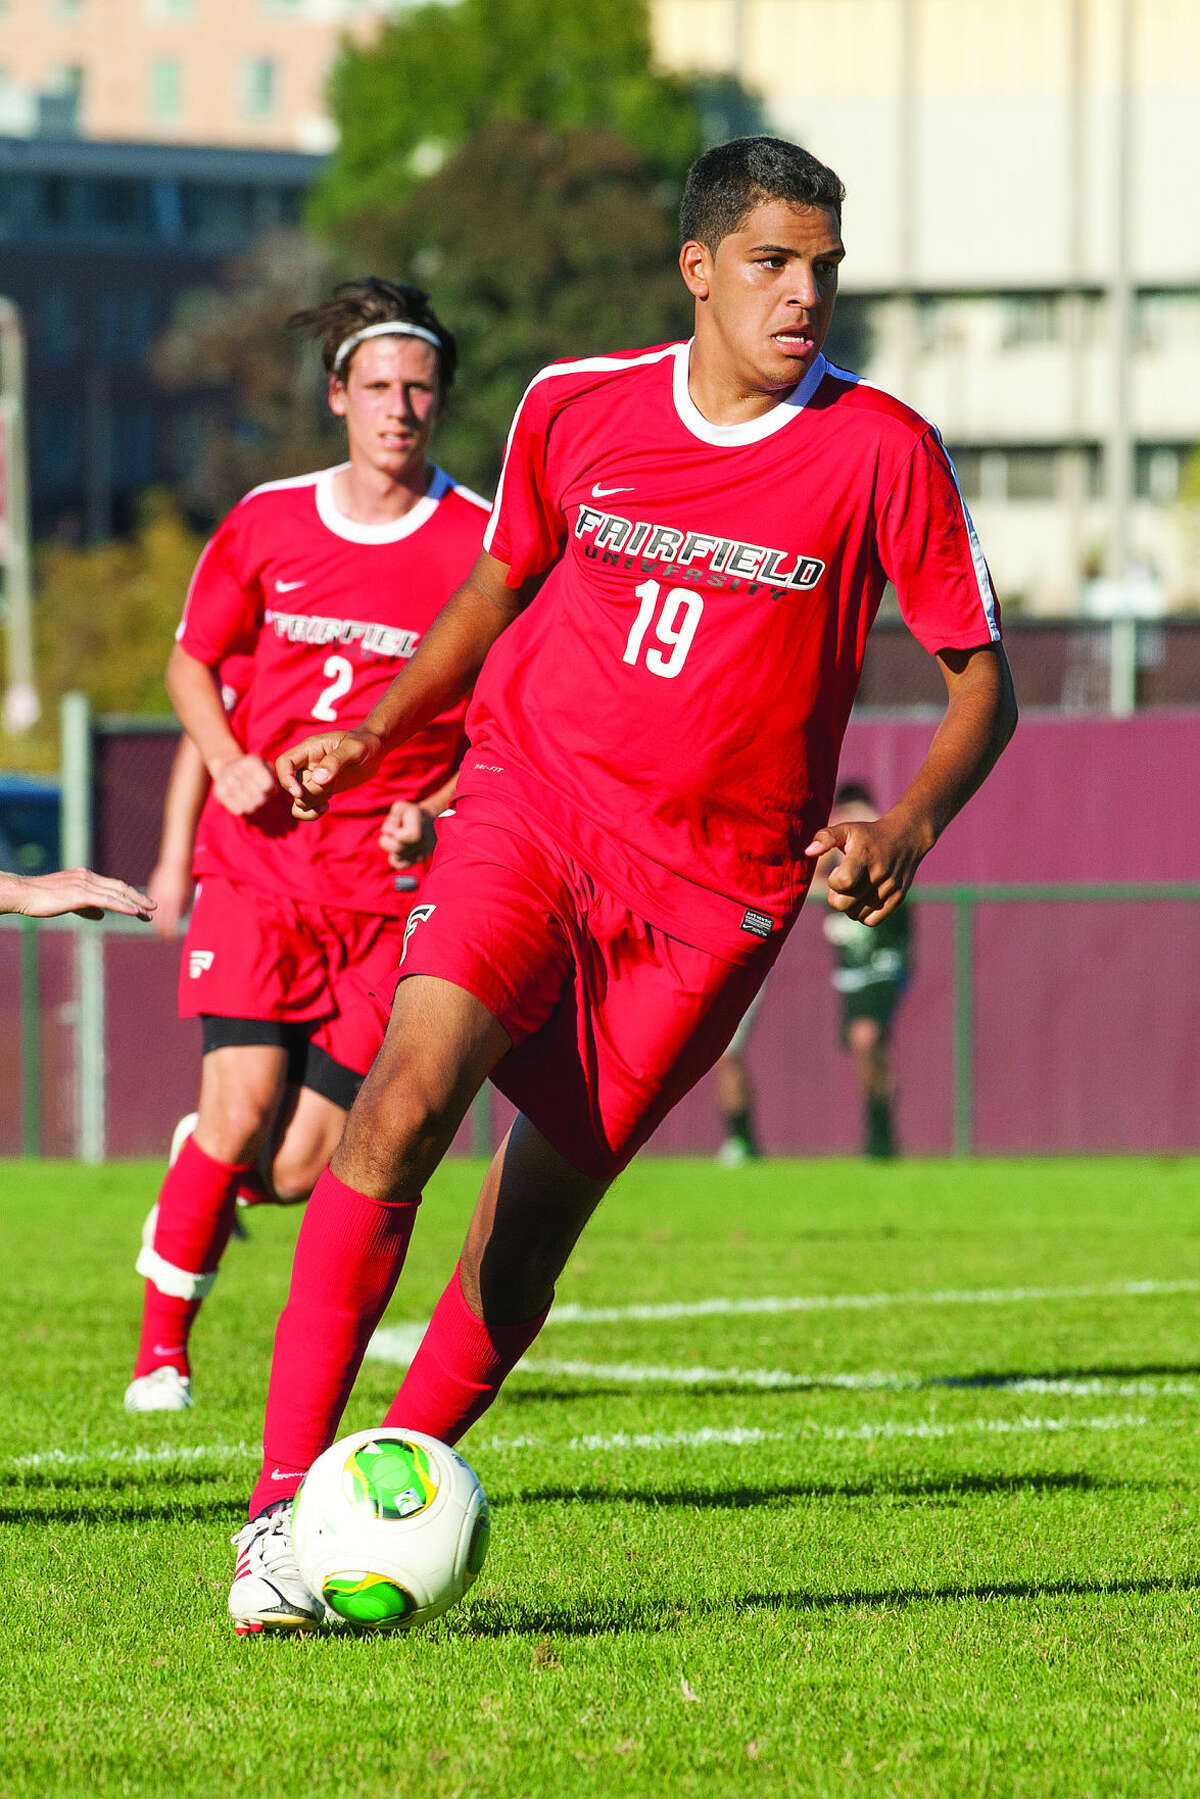 Norwalk High graduate Jake Zuniga dribbles the ball upfield during a game last season. Zuniga, a midfielder, is going into his final season at Fairfield University and is hoping to bring home a second MAACchampionship.